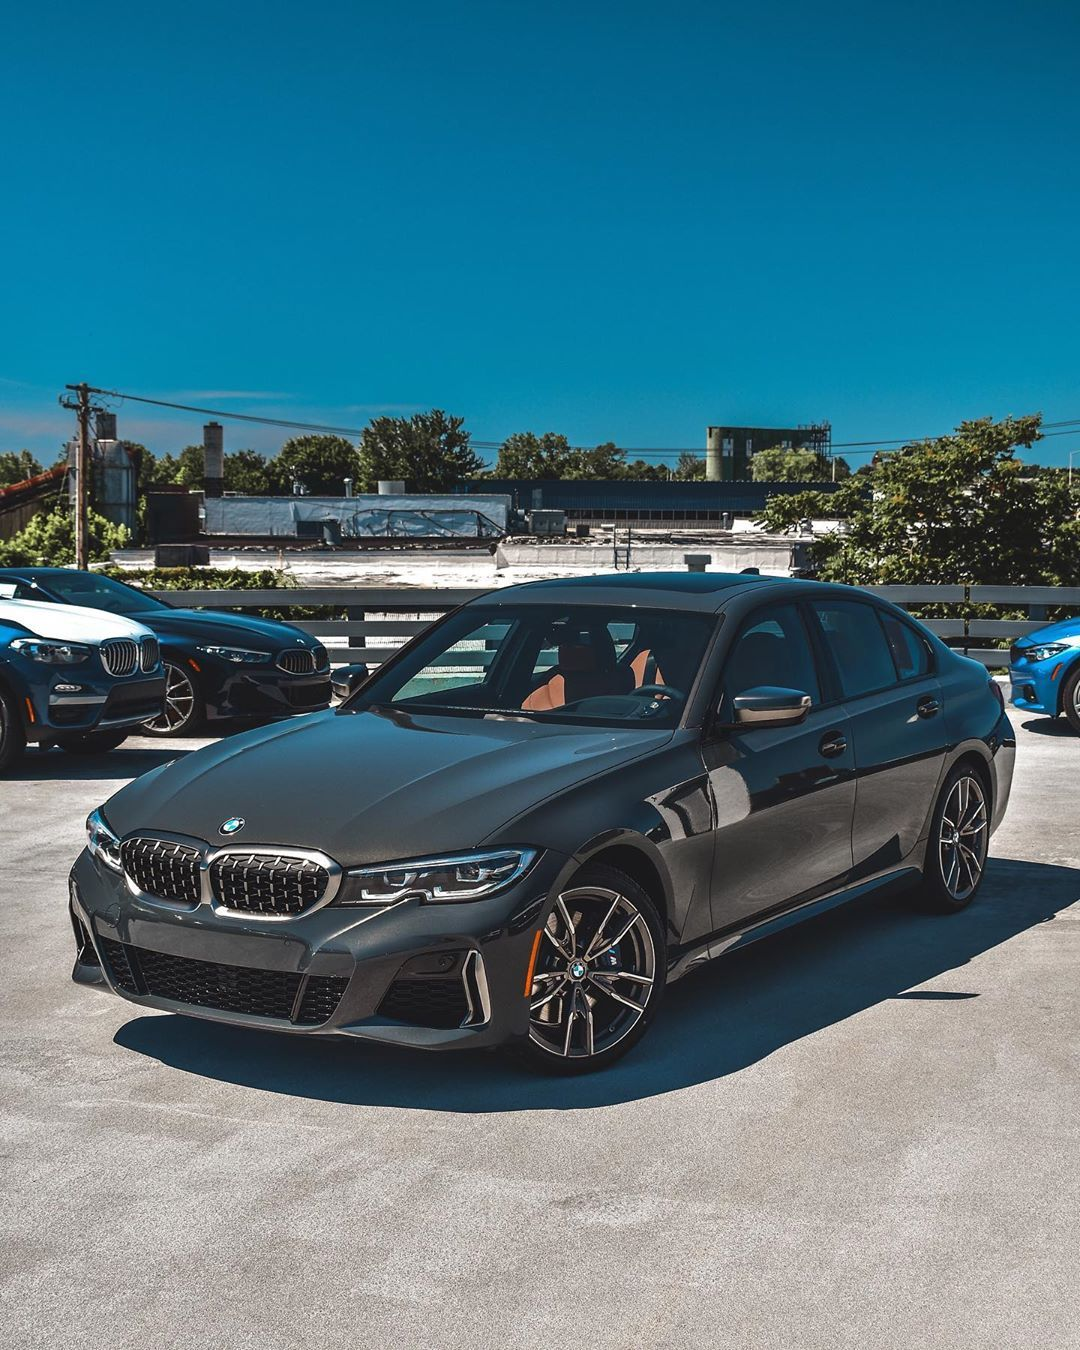 Our Brand New 2020 Bmw M340i In The Showstopping Dravit Grey Presenting Its Bmw Style 792m Cerium Grey Wheels Is This The Best Looking